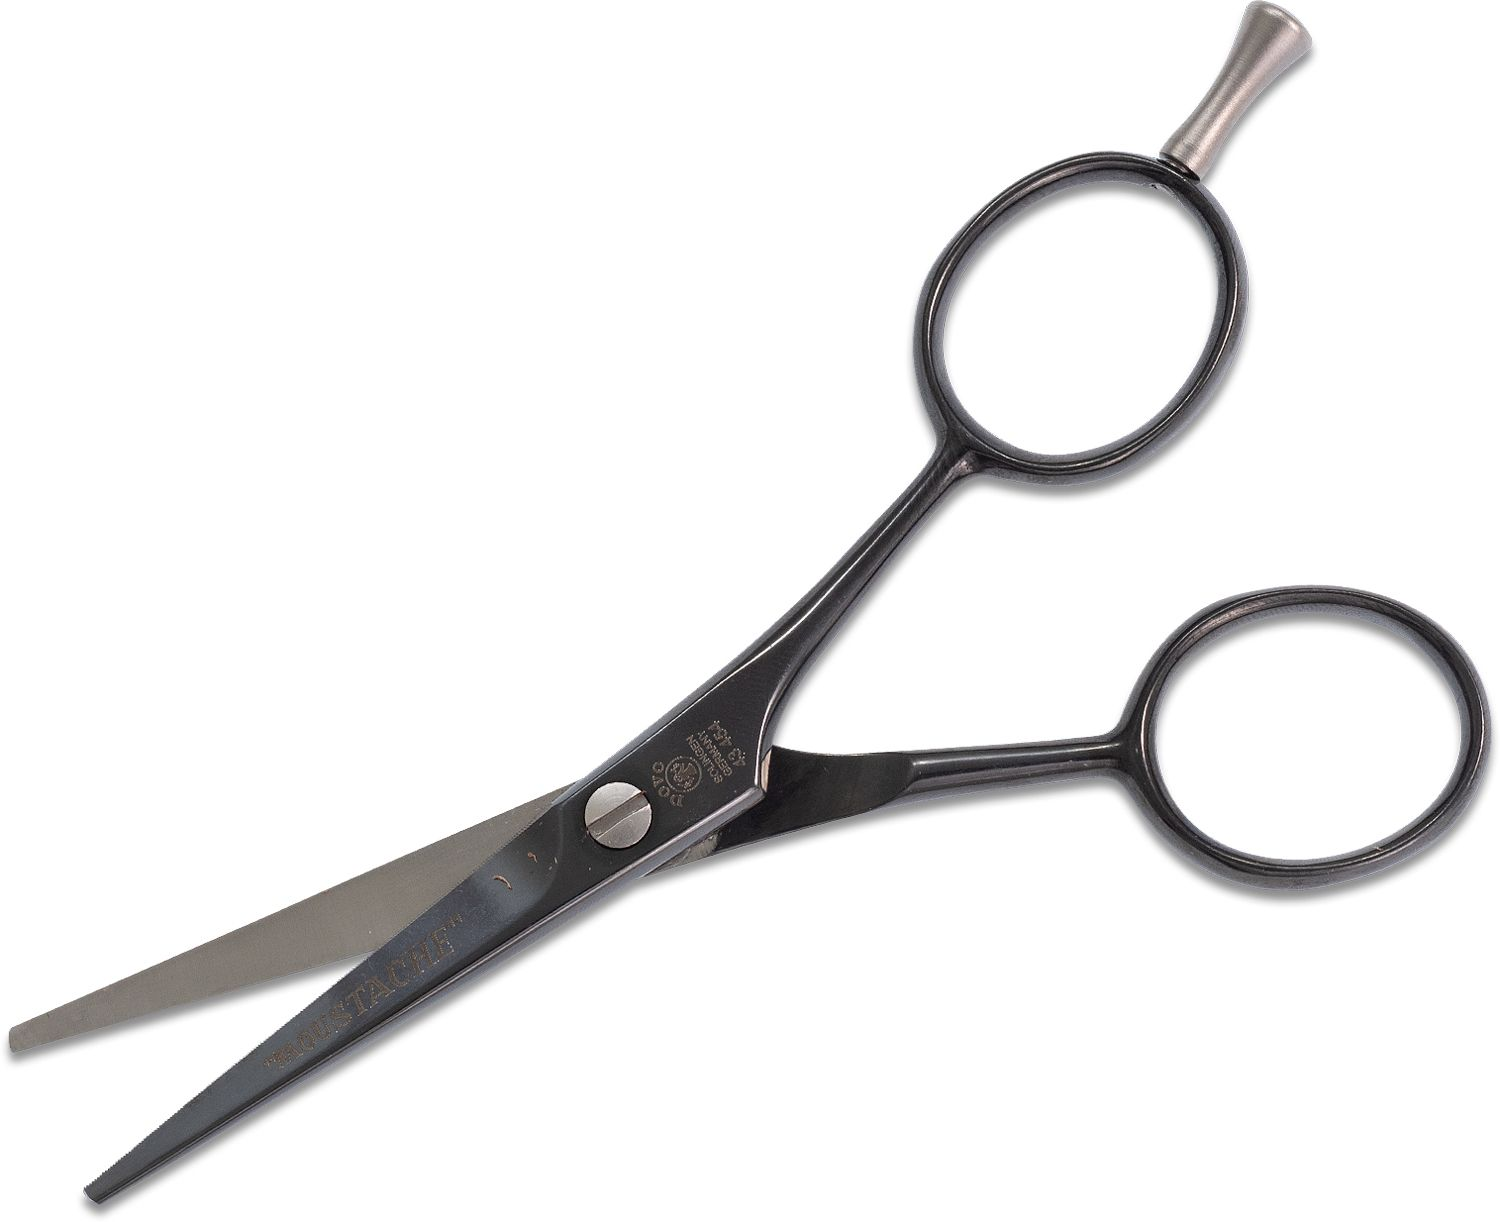 DOVO 4.5 inch Moustache Scissors with Finger Rest, Black Polished, Brown Leather Sheath